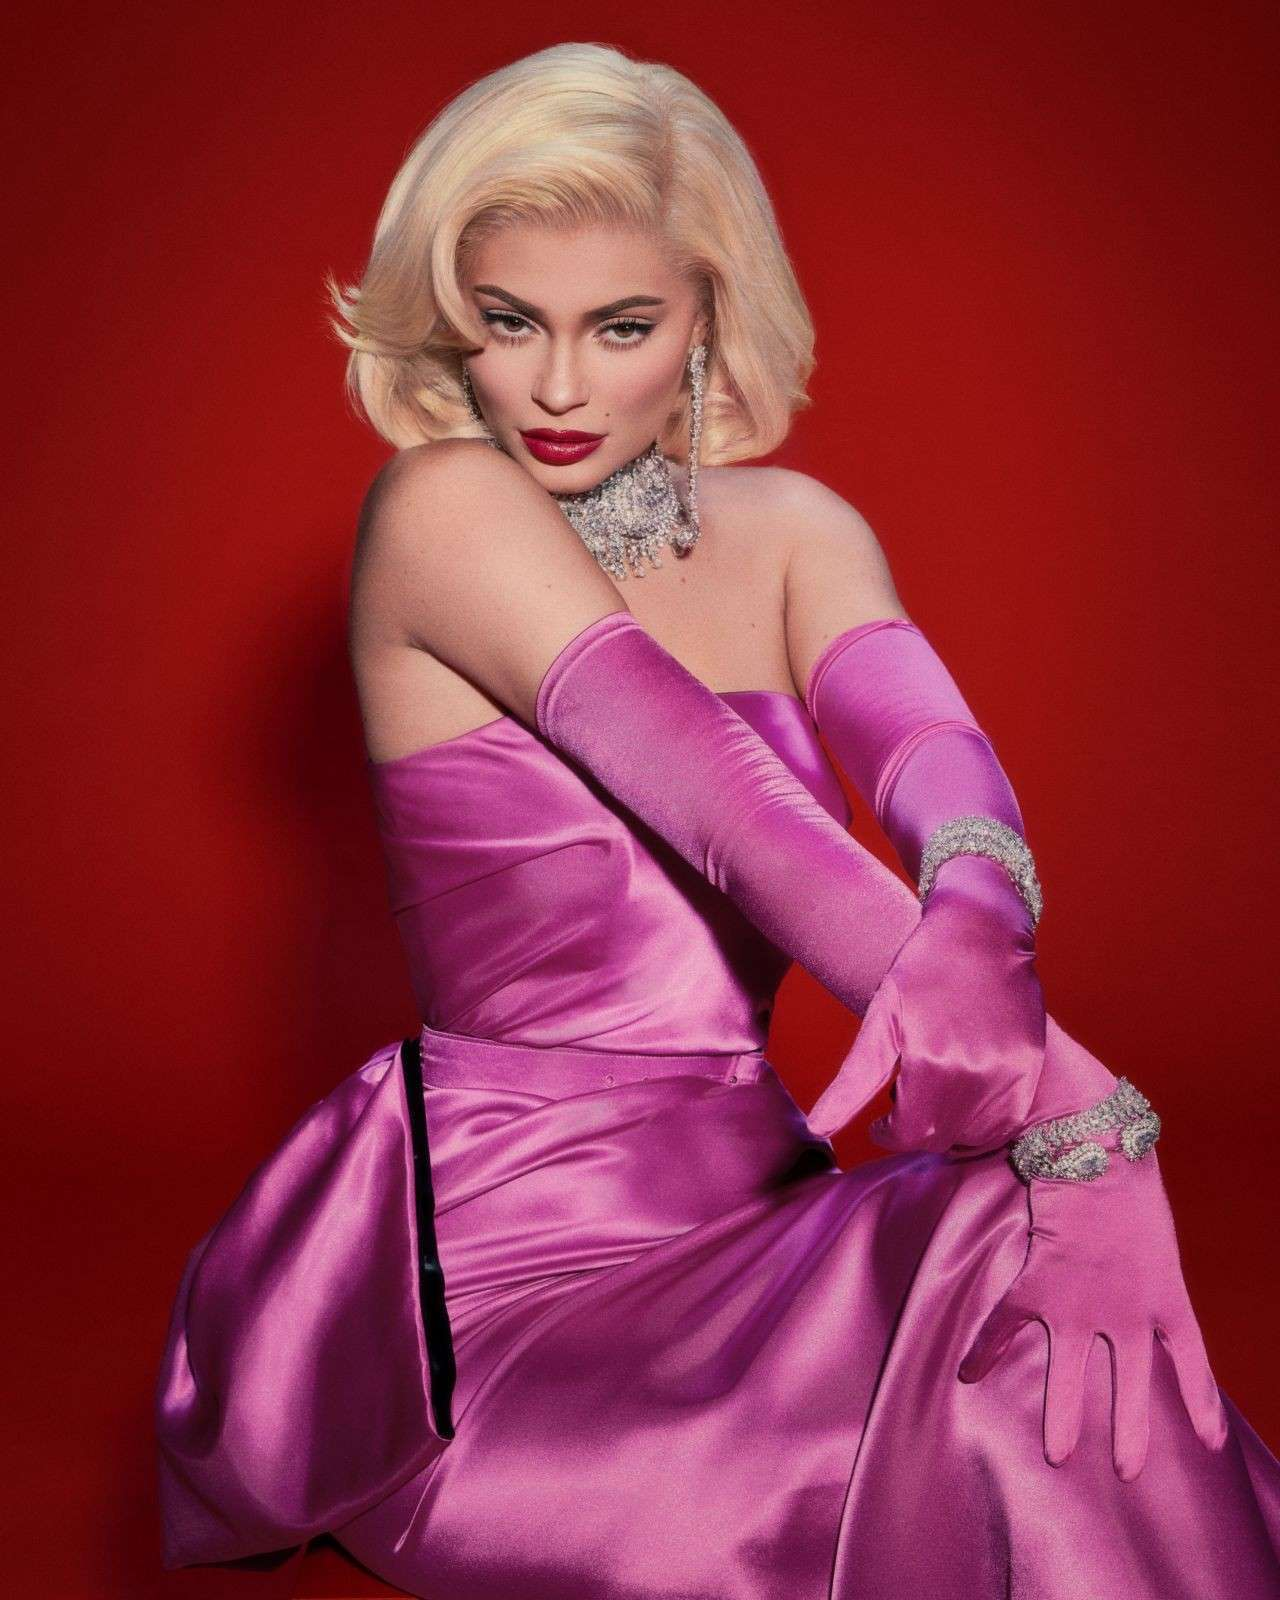 Kylie Jenner Marilyn Monroe Style Latest Photoshoot